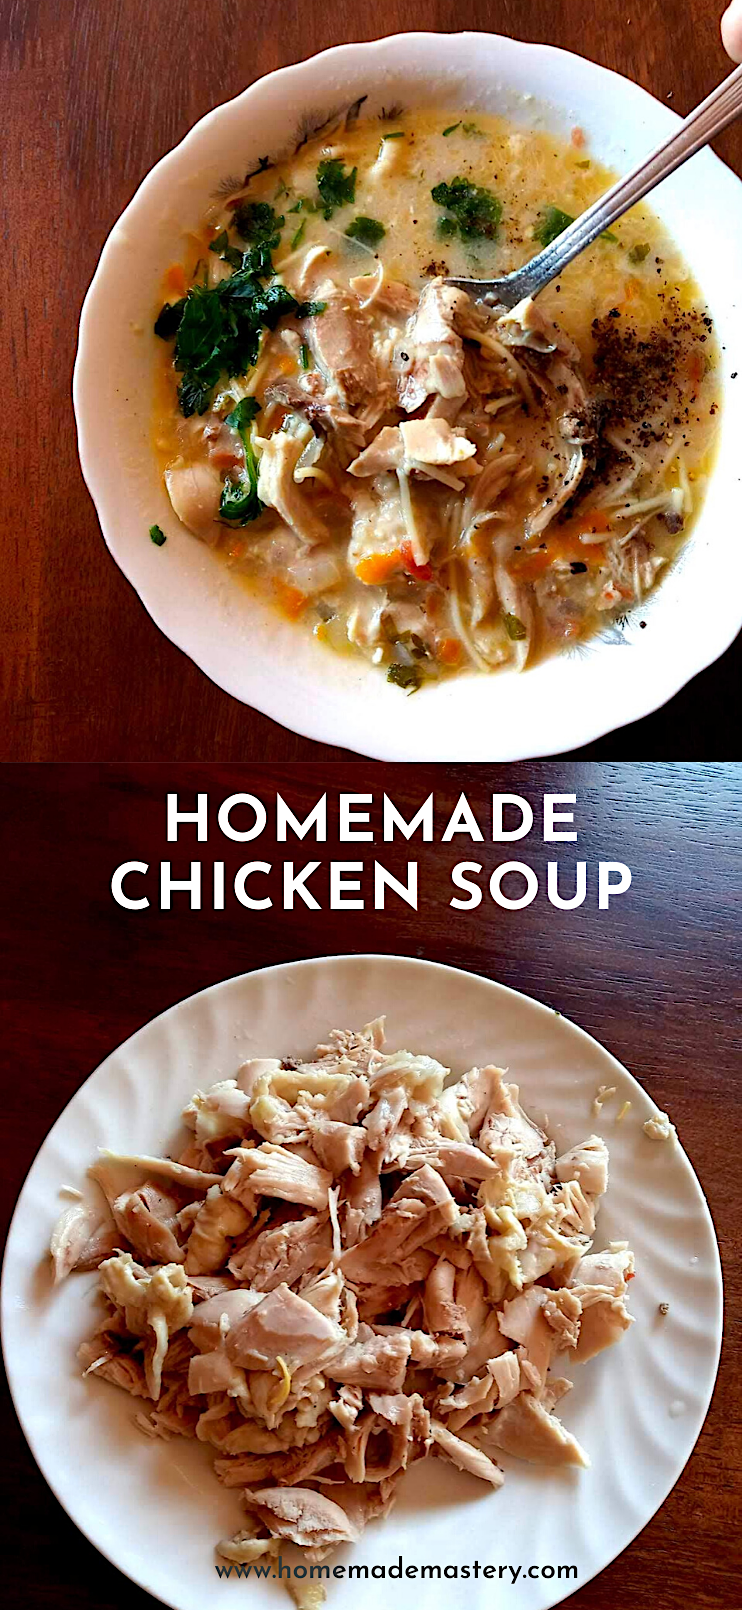 Delicious homemade chicken soup with noodles! This healthy chicken soup is easy and filling and great for a warming lunch or dinner! #chicken #soup